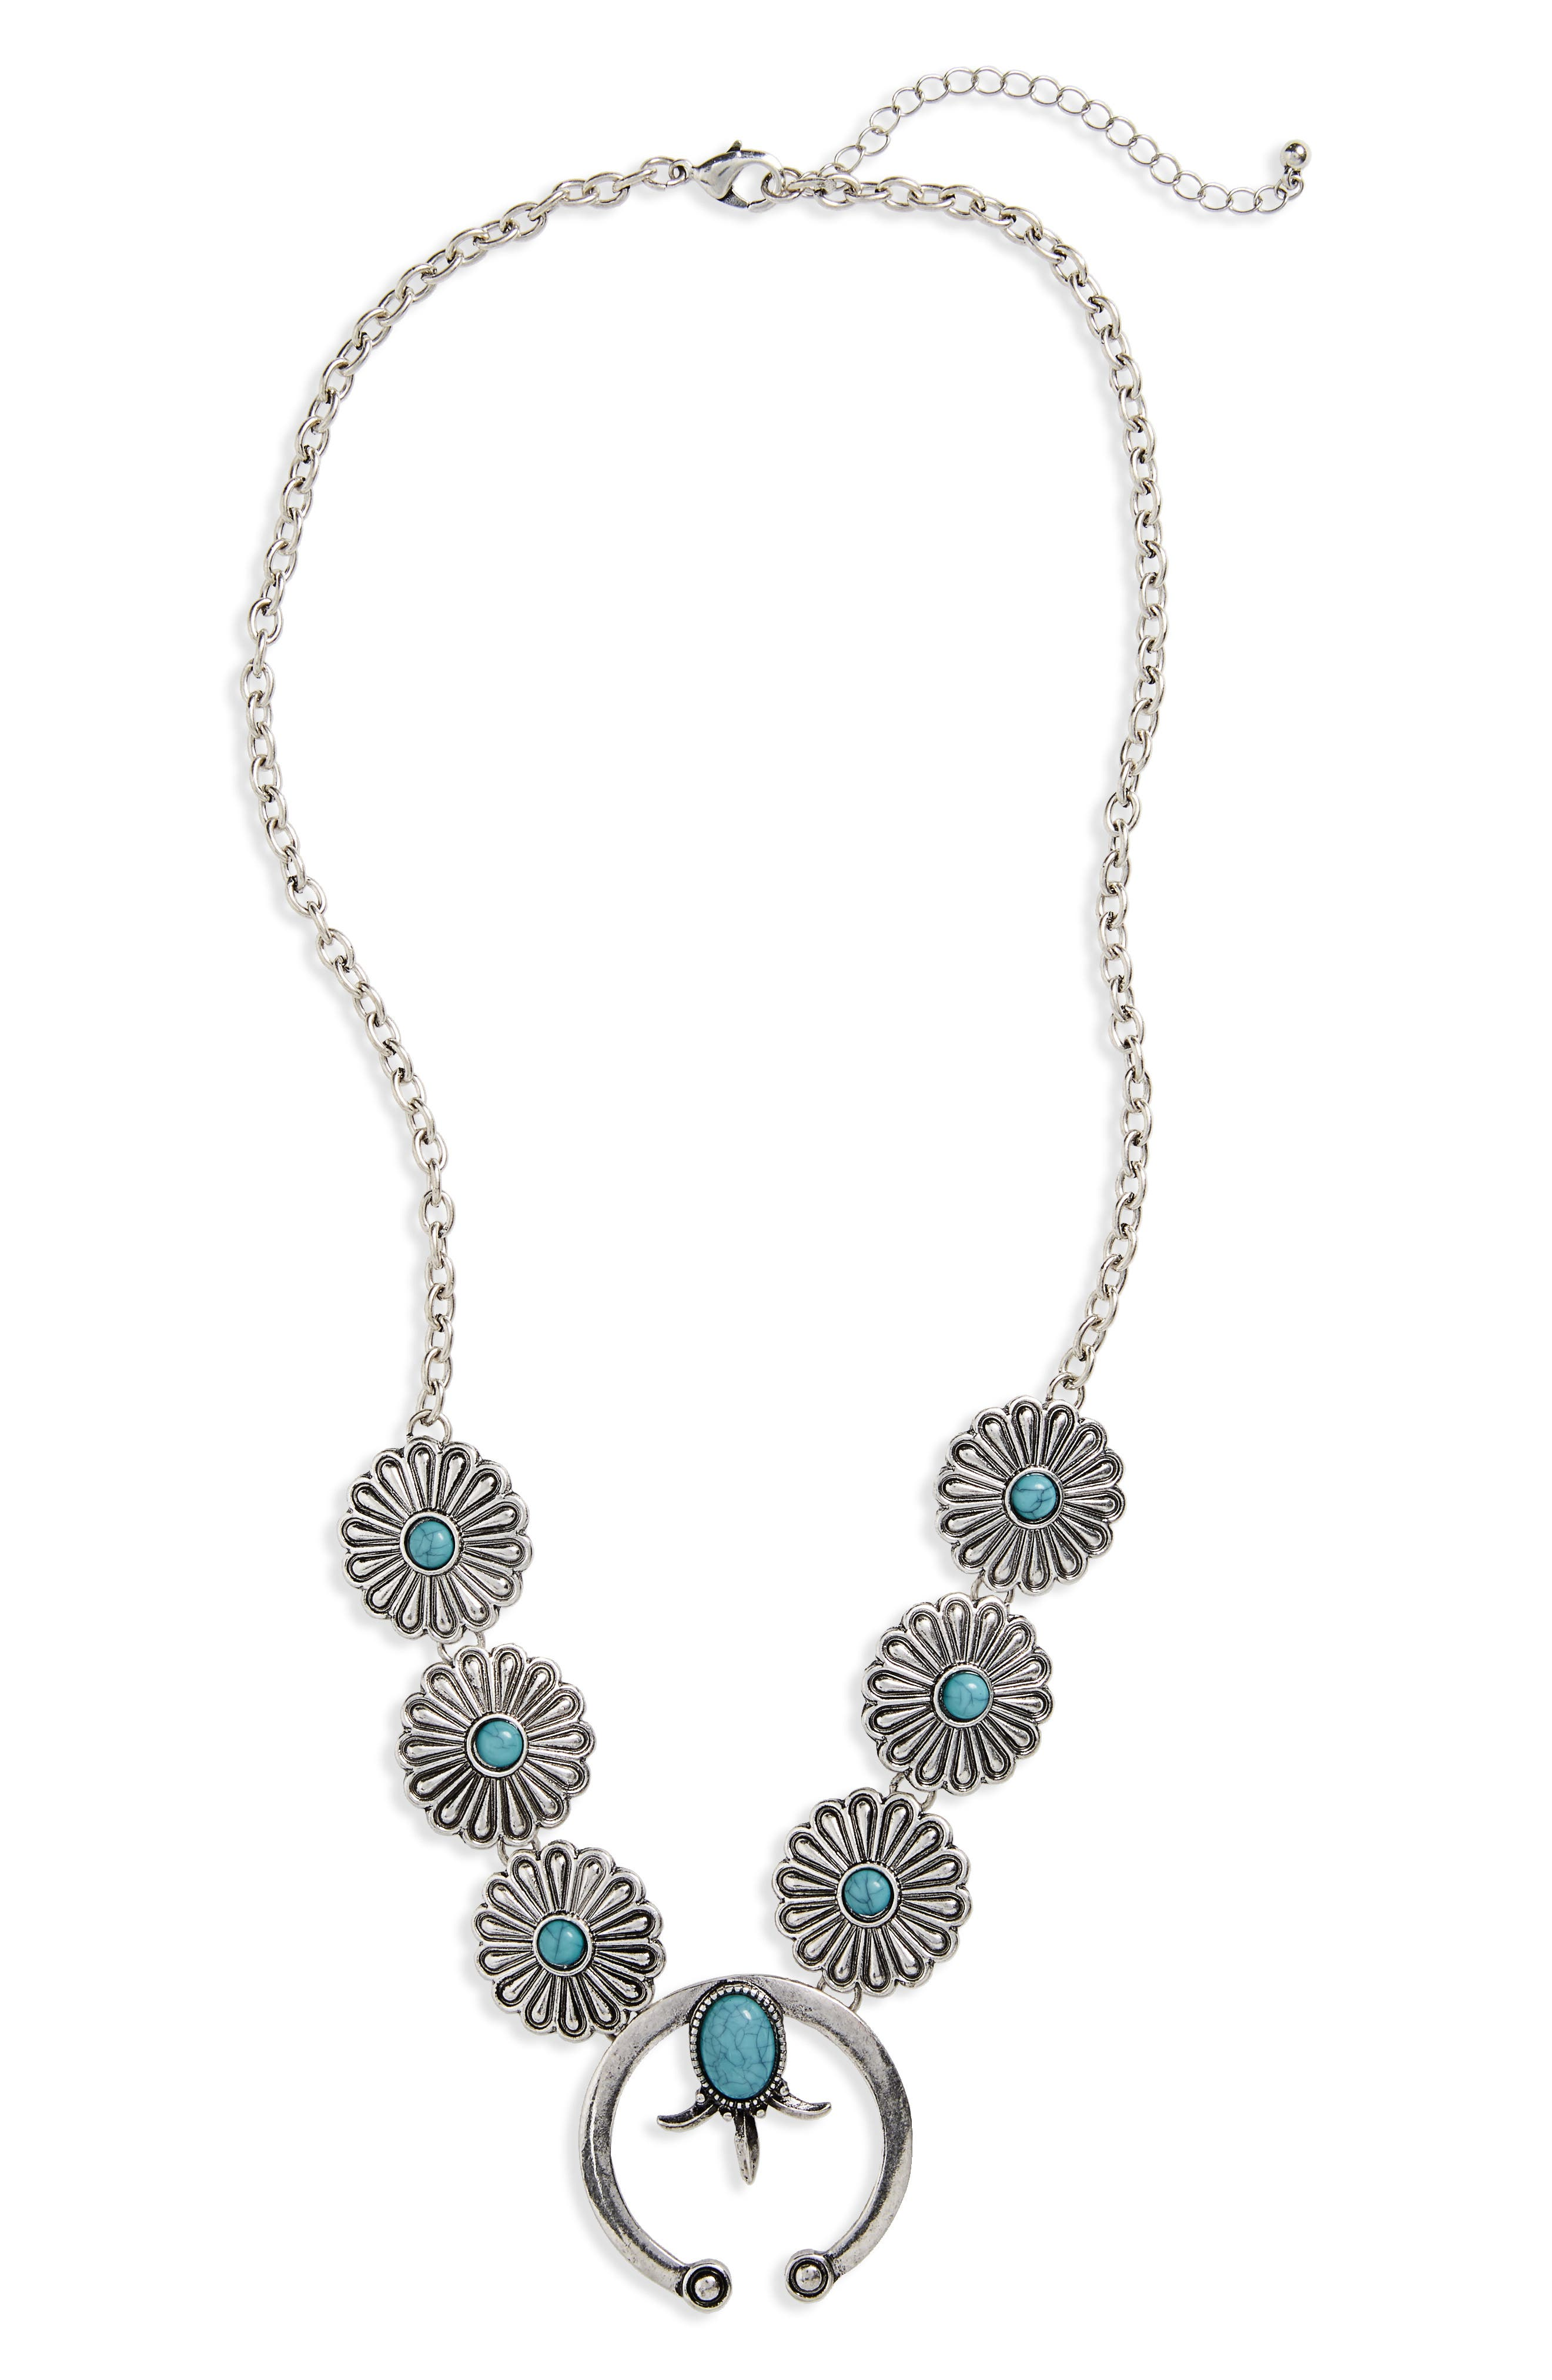 Western Floral Chain Necklace,                             Main thumbnail 1, color,                             Silver/ Turquoise